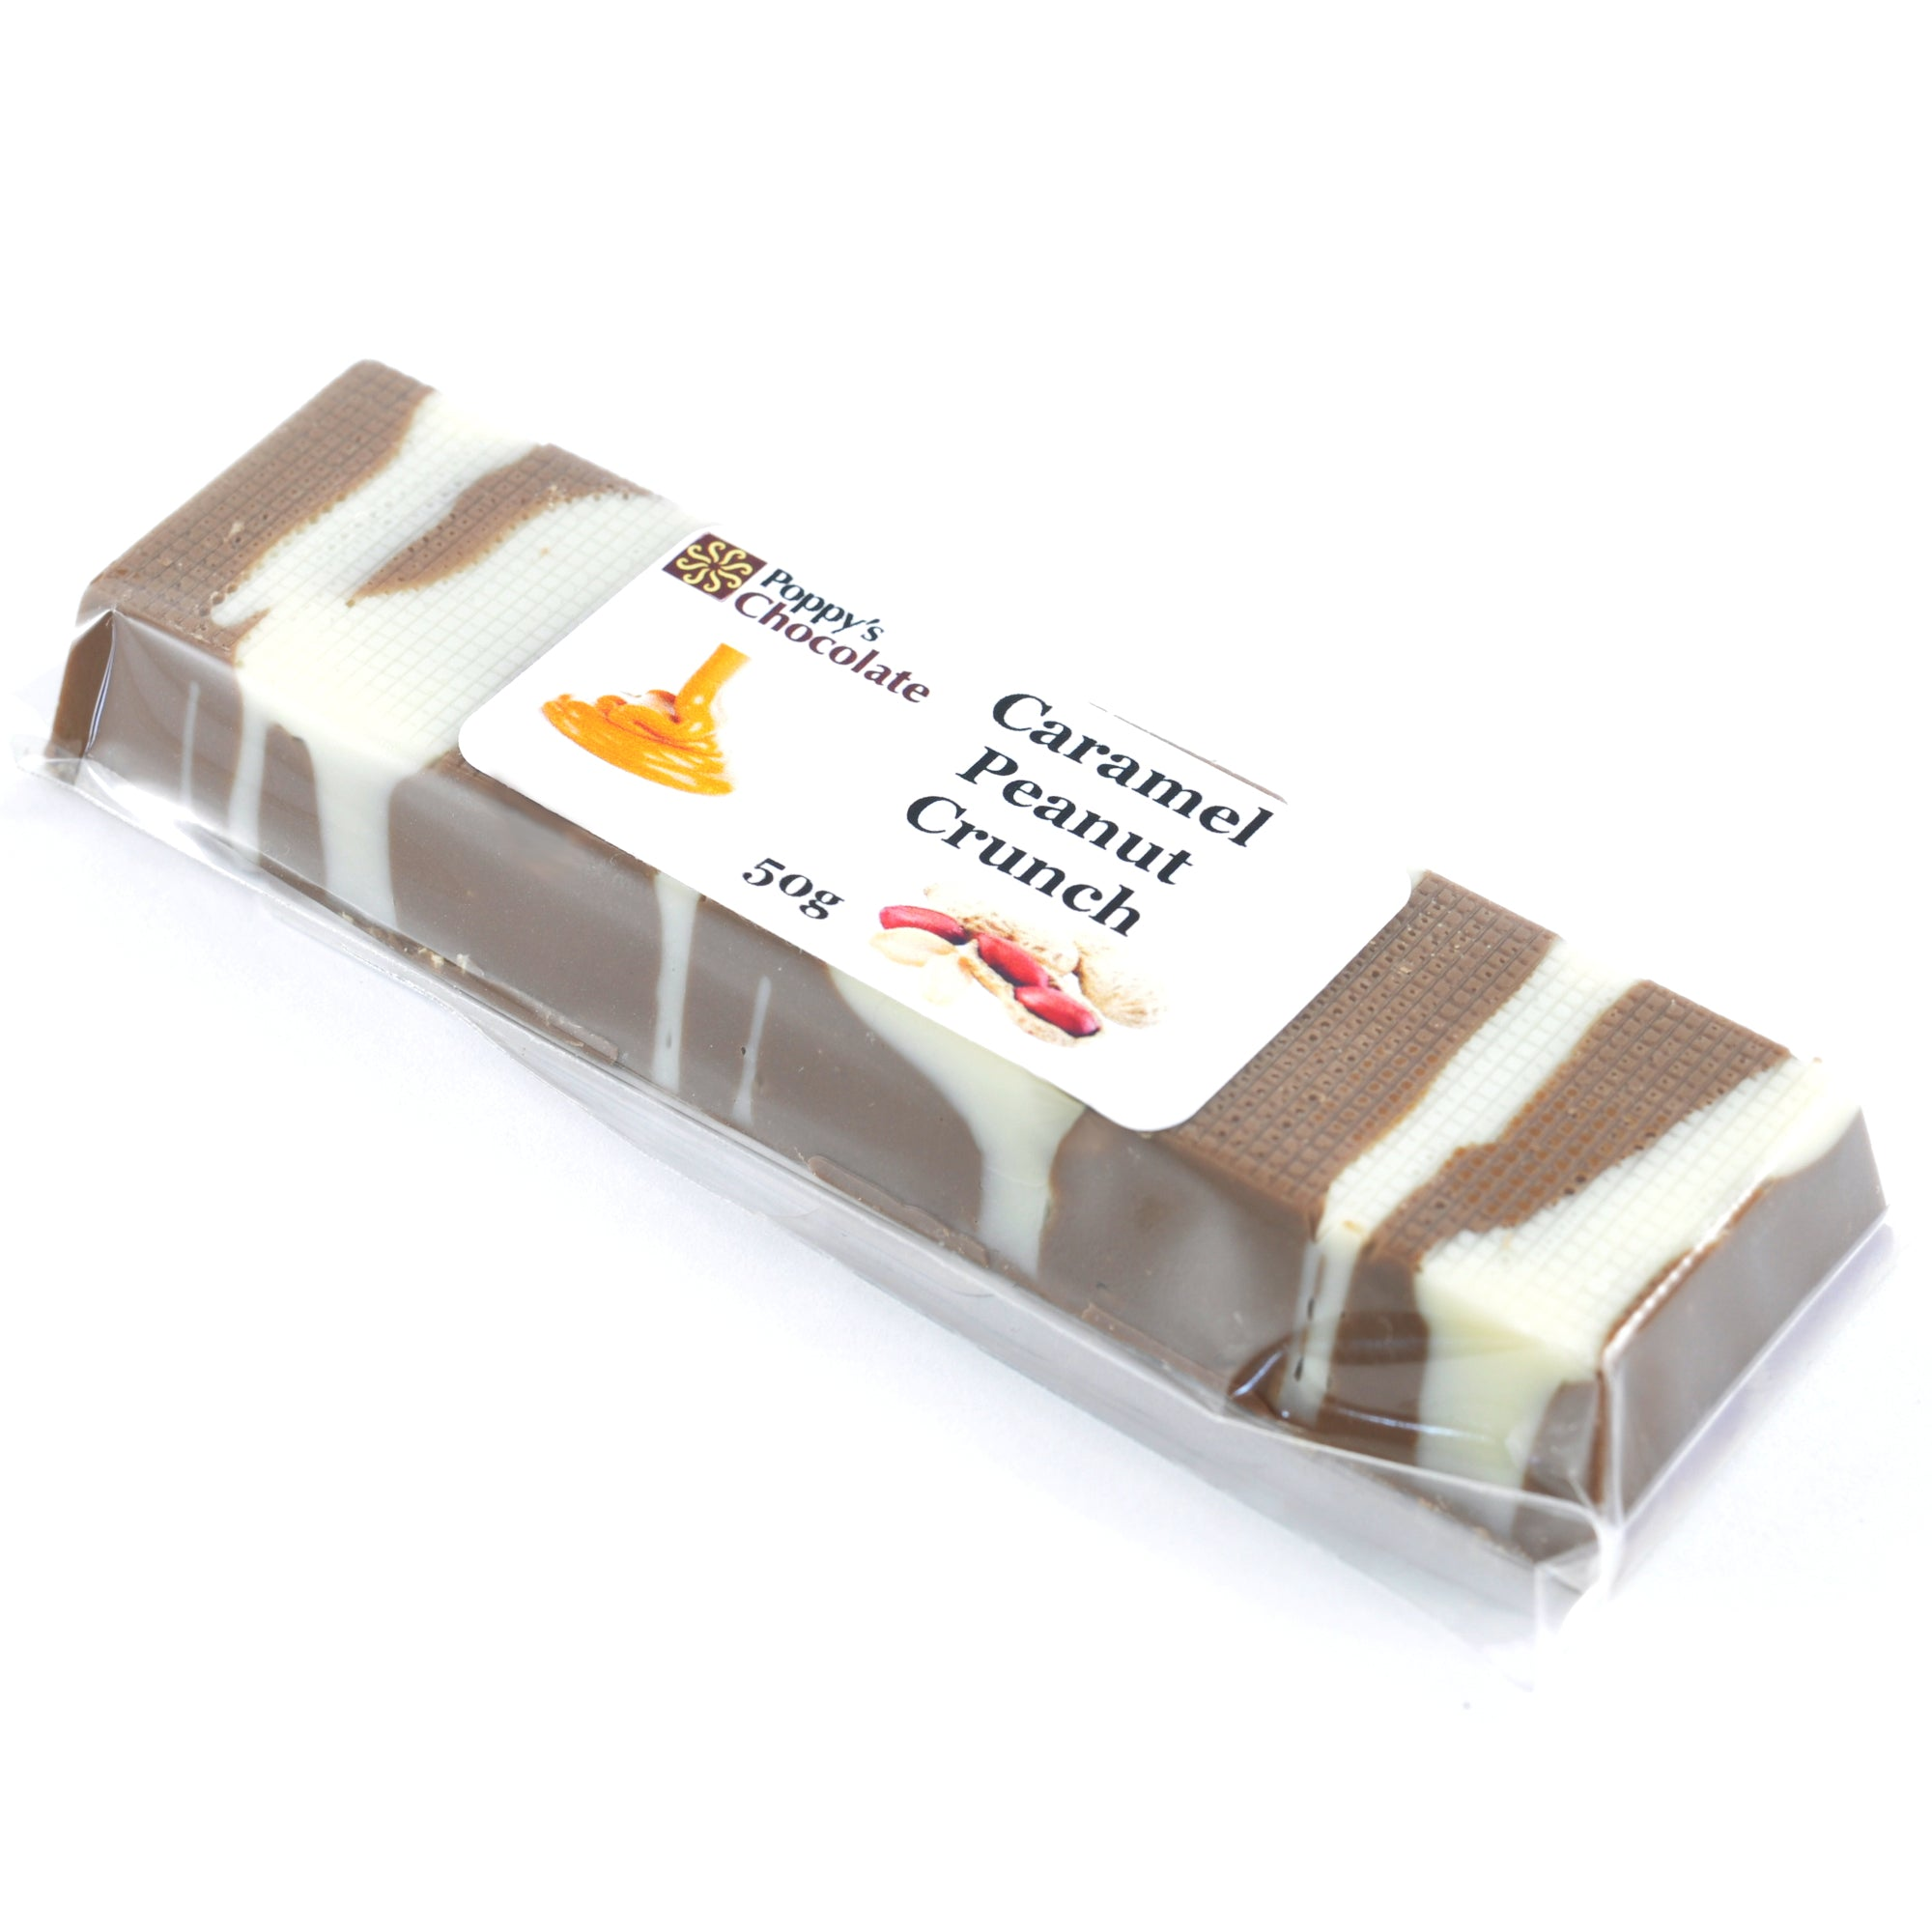 Caramel Peanut Crunch Bar 50g